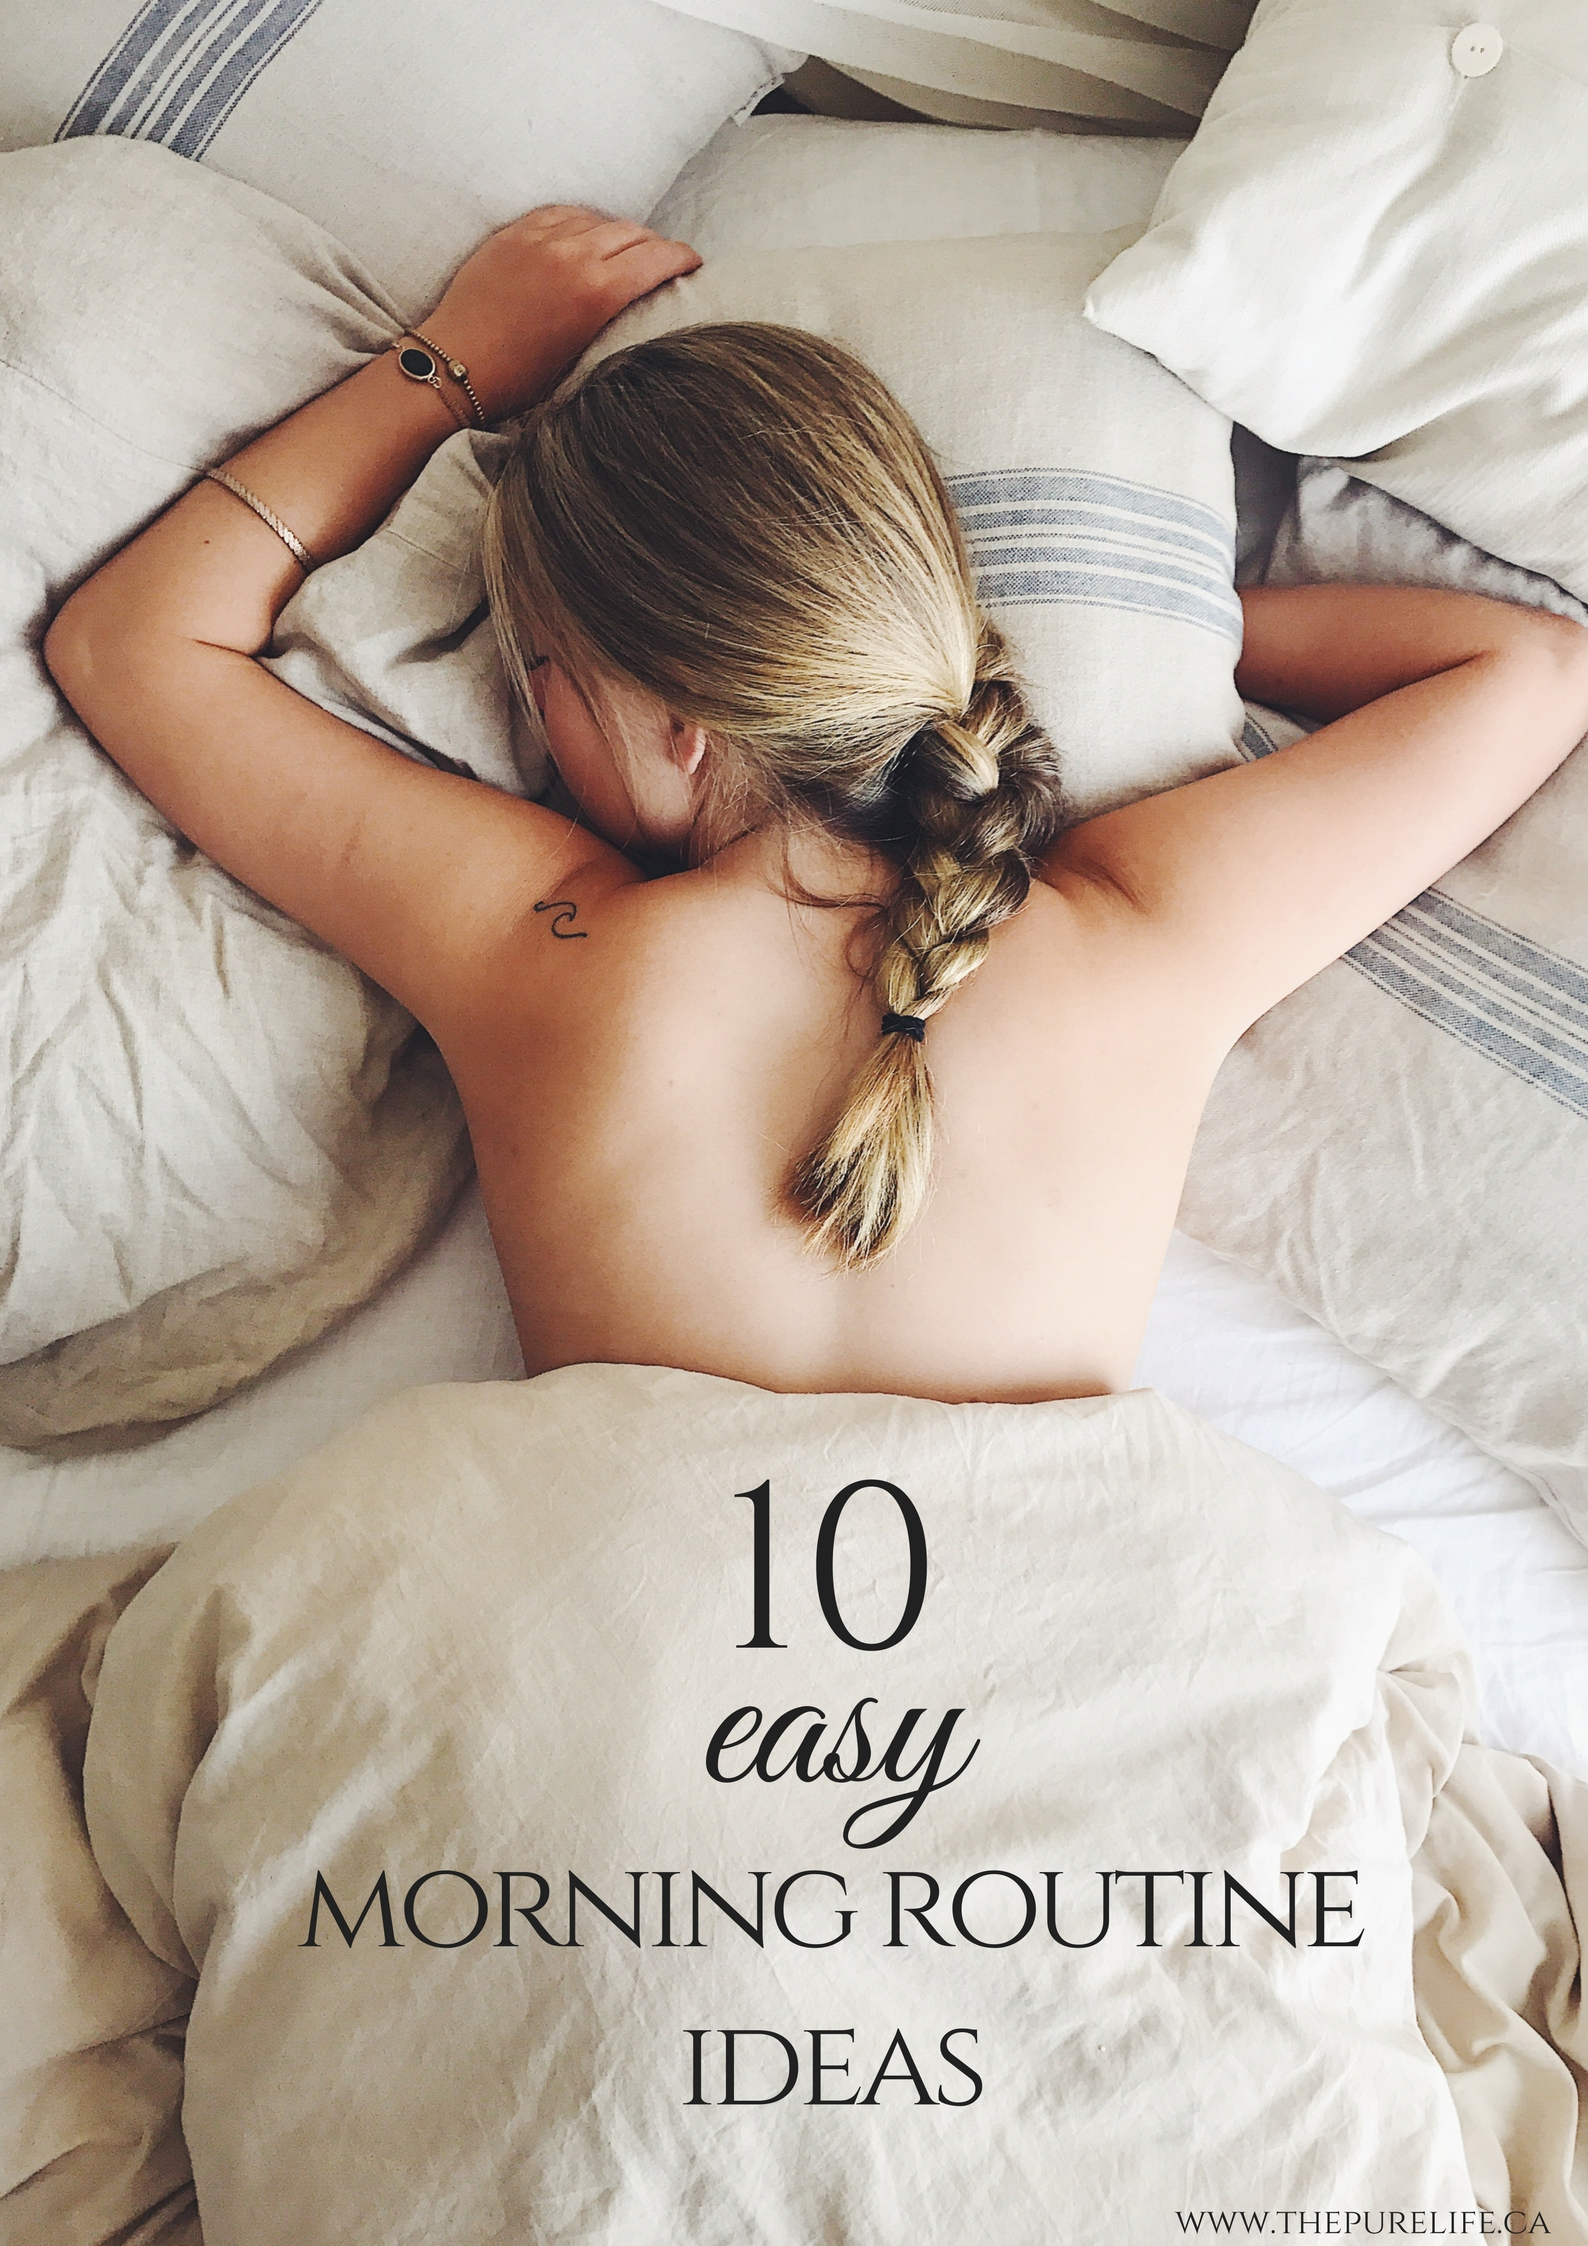 10 Easy Morning Routine Ideas